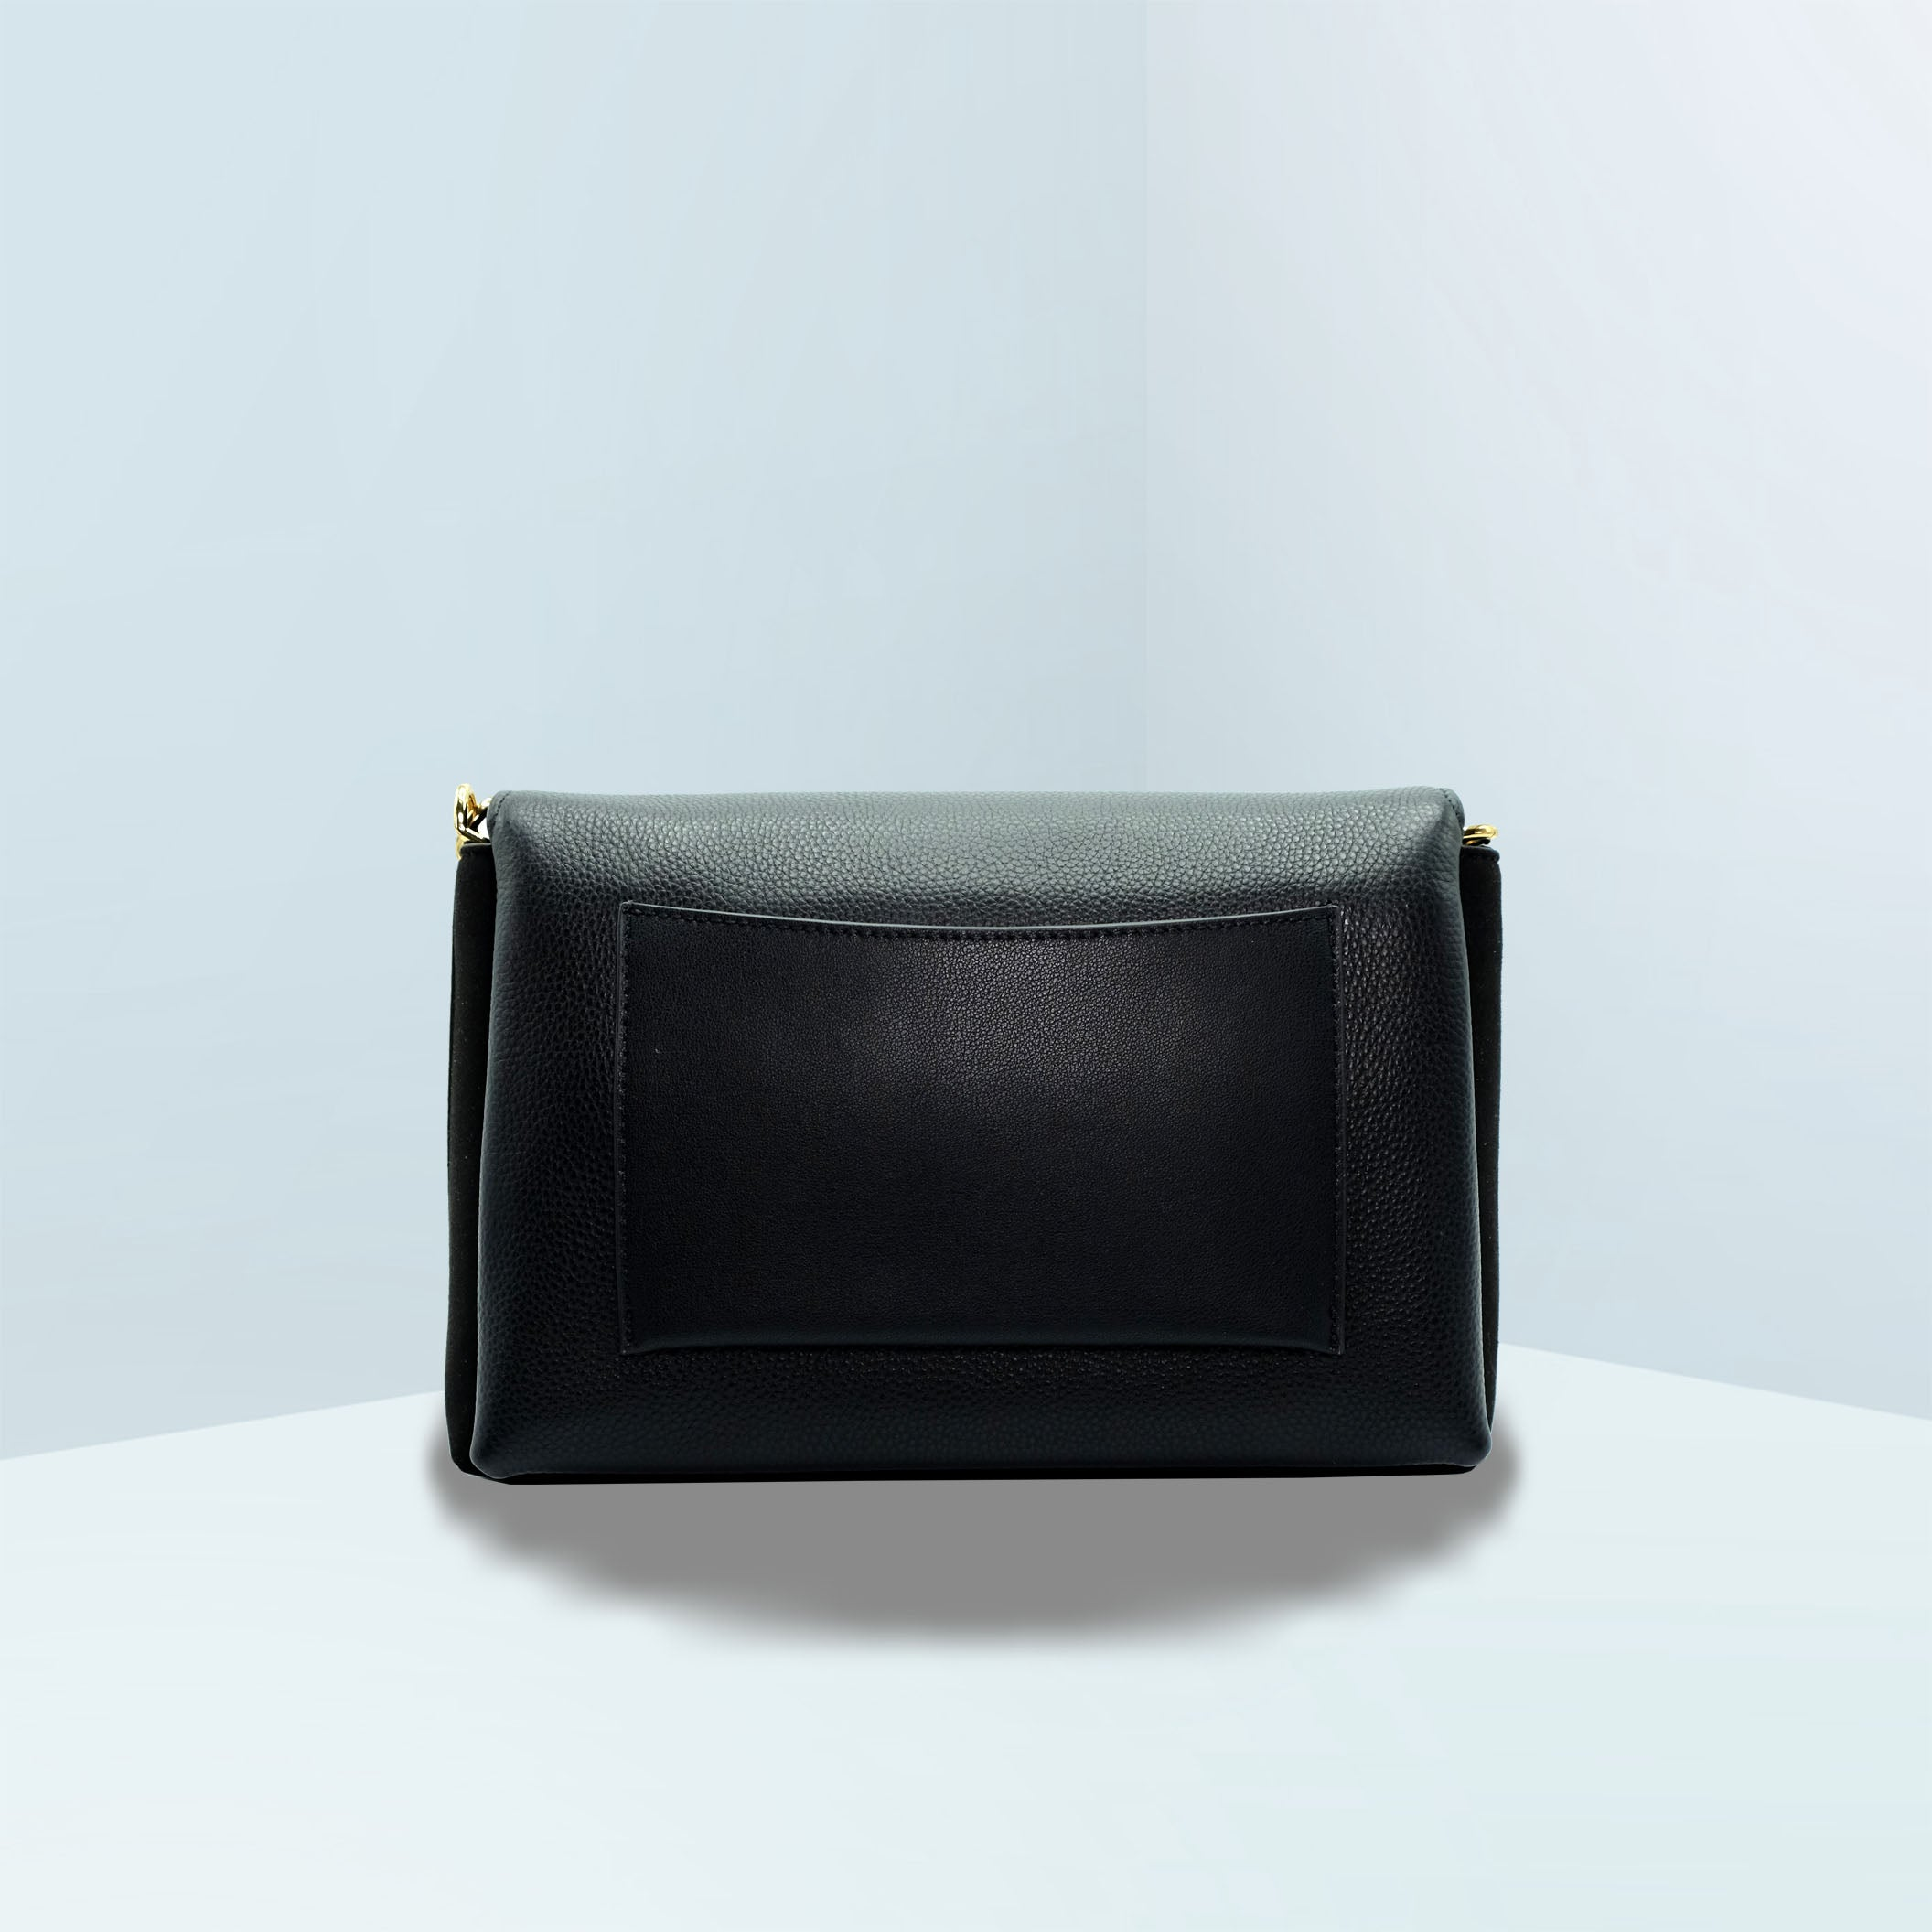 Kira Mixed-Materials Double-Strap Shoulder Bag